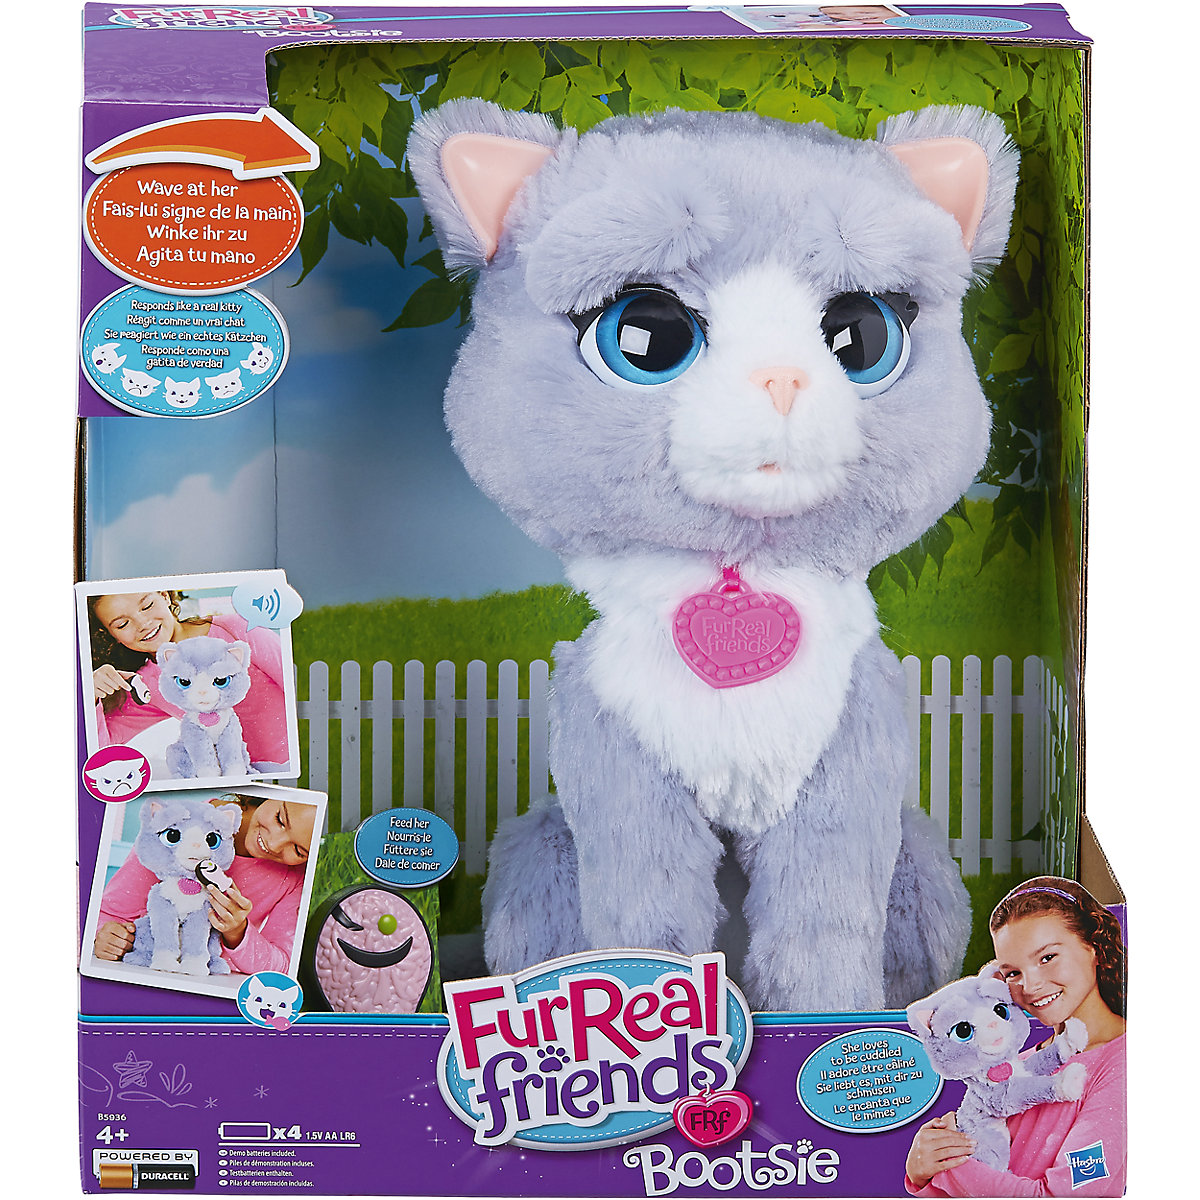 Hasbro Furreal Friends Bootsie